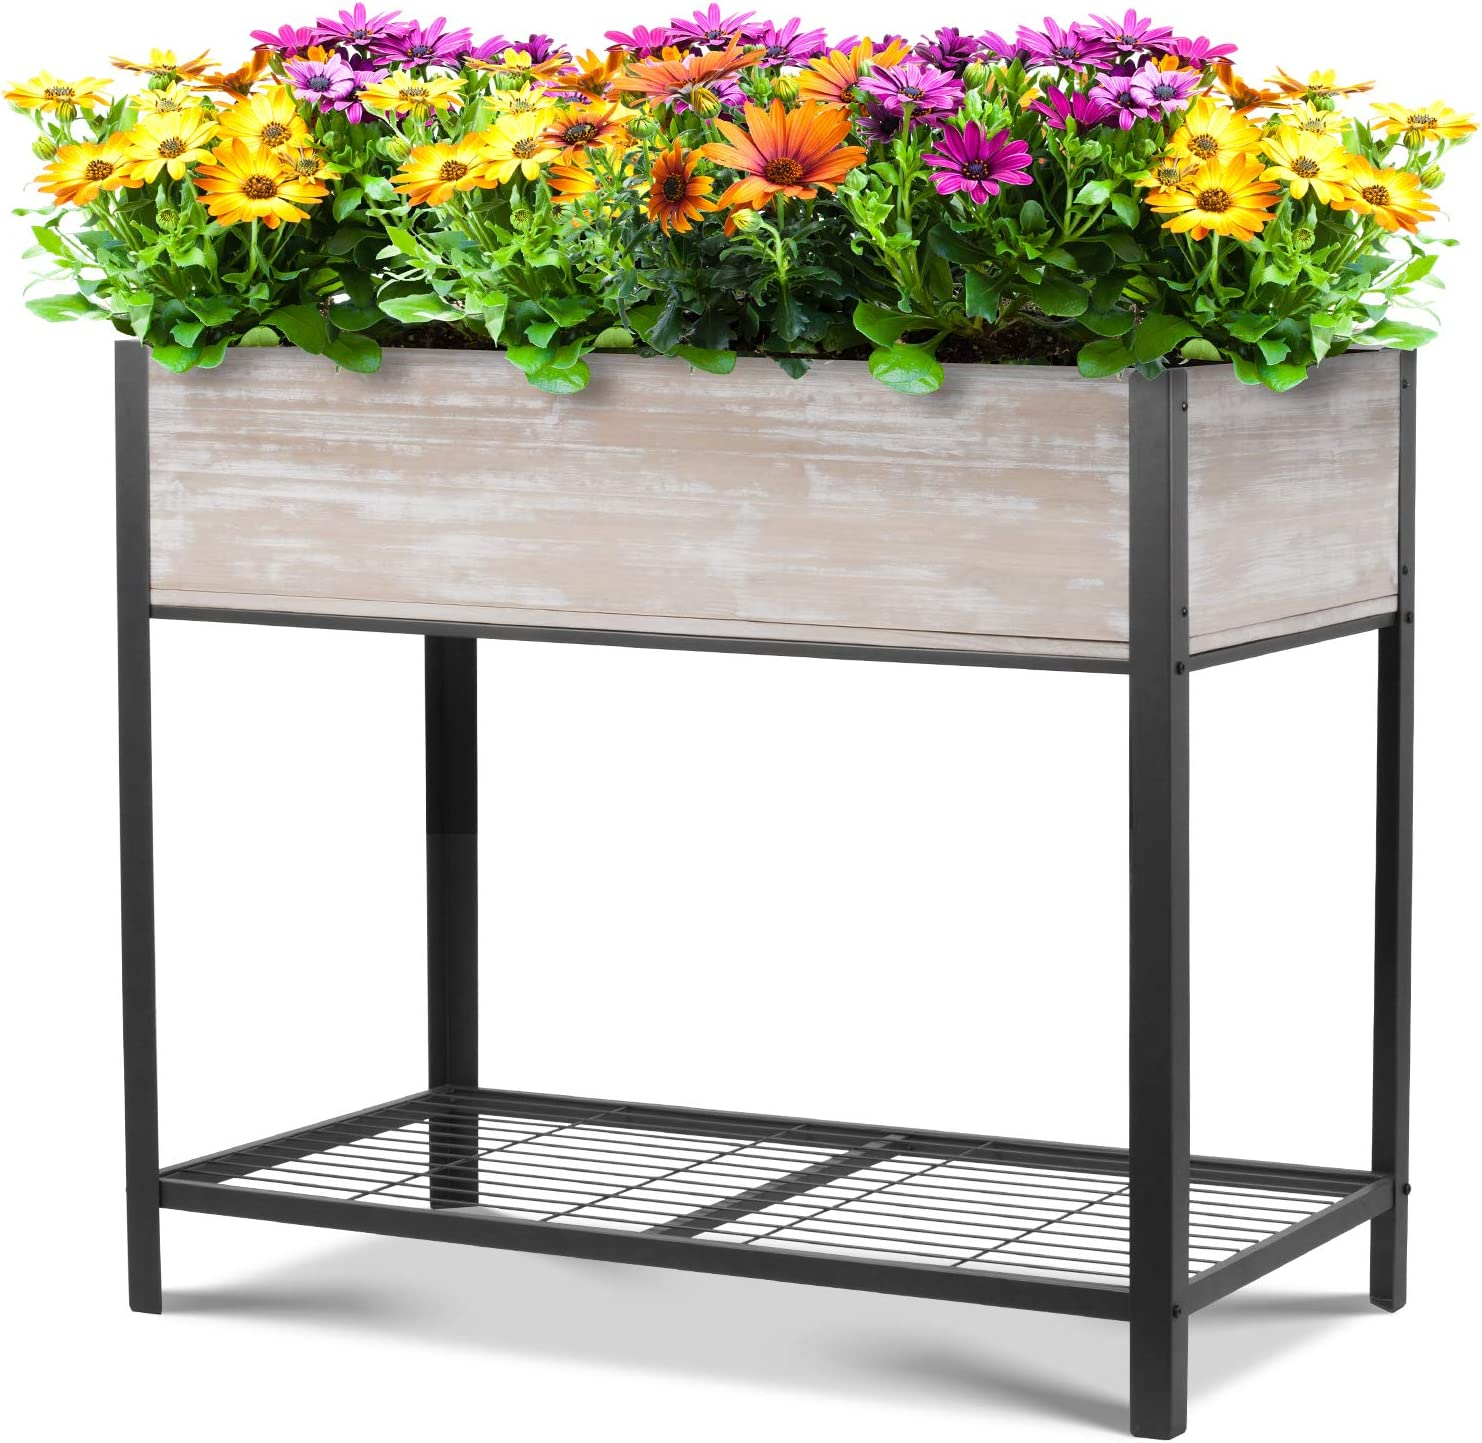 Wooden Raised Garden Bed Elevated Wood Planter for Growing Fresh Herbs, Vegetables, Flowers, Succulents and Other Plants, Indoor Outdoor 37.8 x 21.6 x 35.6in